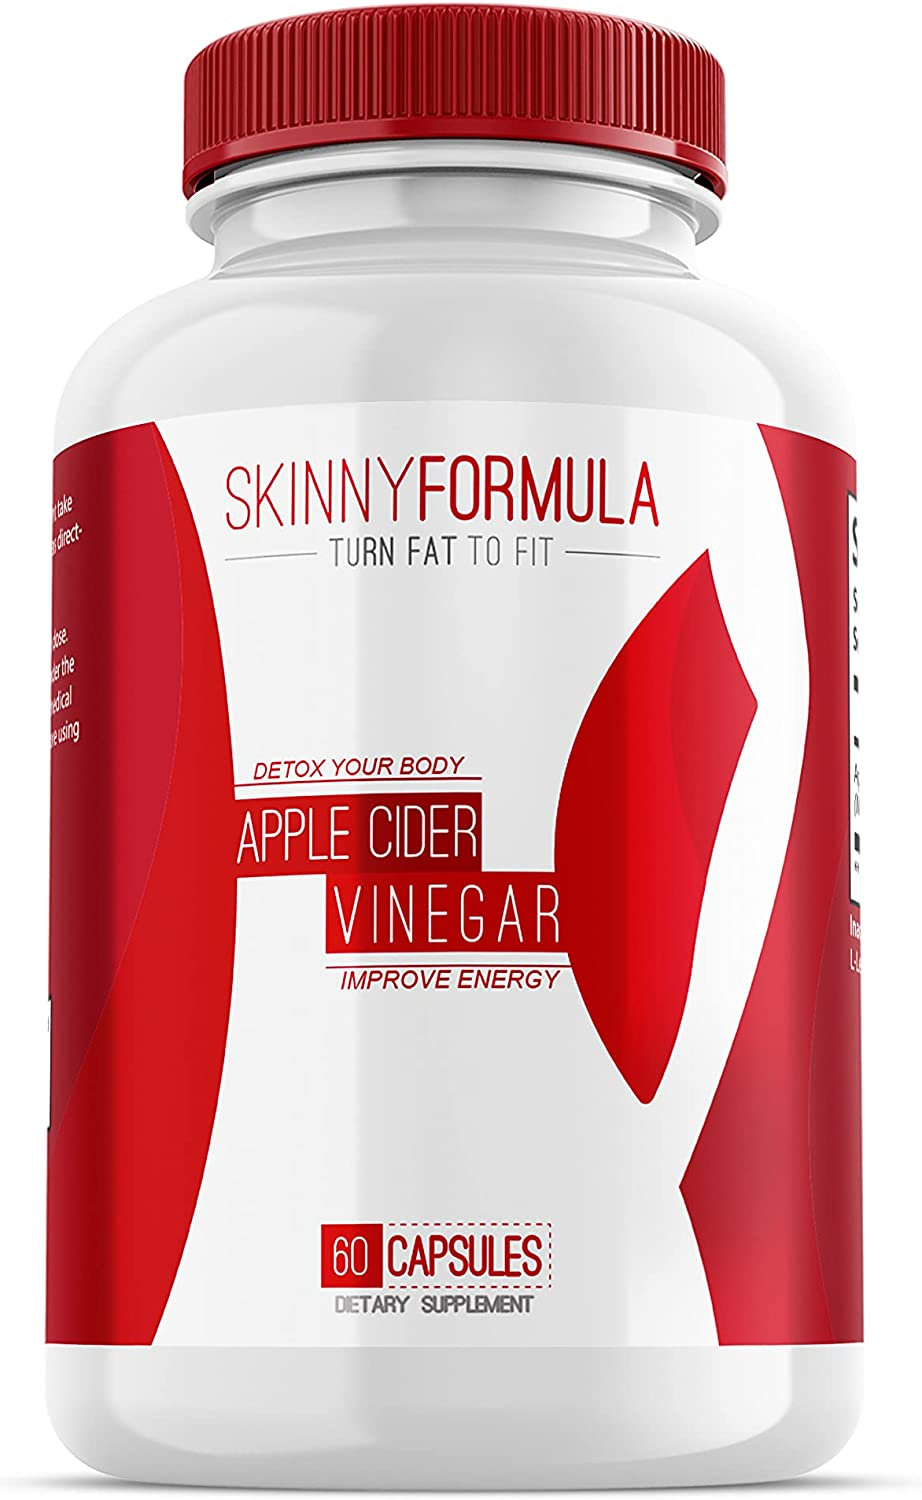 Apple Cider Vinegar - Fat Burner and Weight Loss Supplement Detox for Women and Men - 100% All Natural Apple Cider Vinegar Keto Weight Loss Pills - Powerful Cleanser & Appetite Suppressant - 1300mg